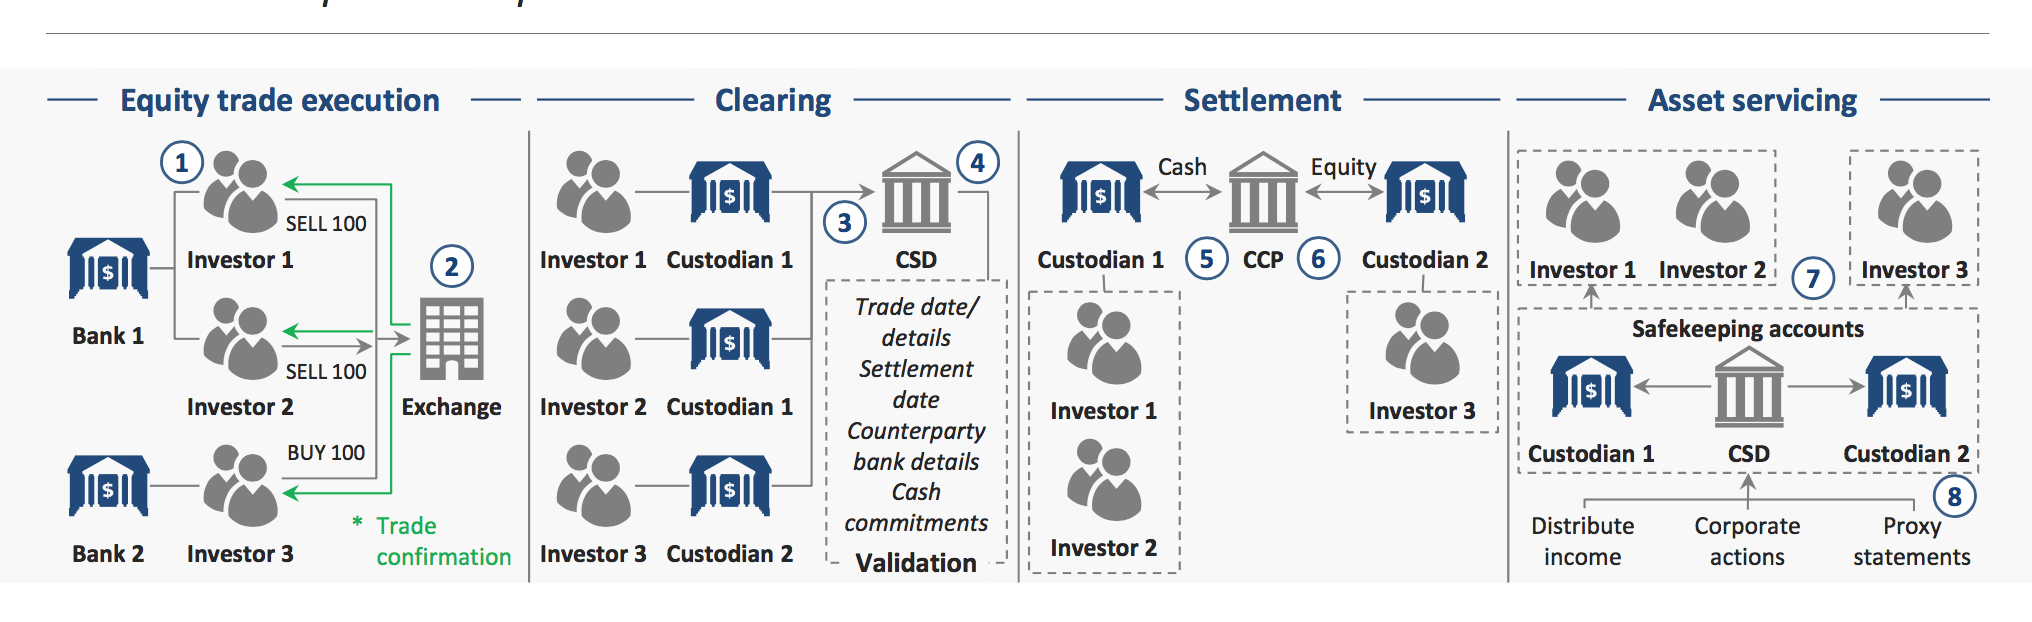 To settle and clear an order on an exchange involves multiple intermediaries and points of failure